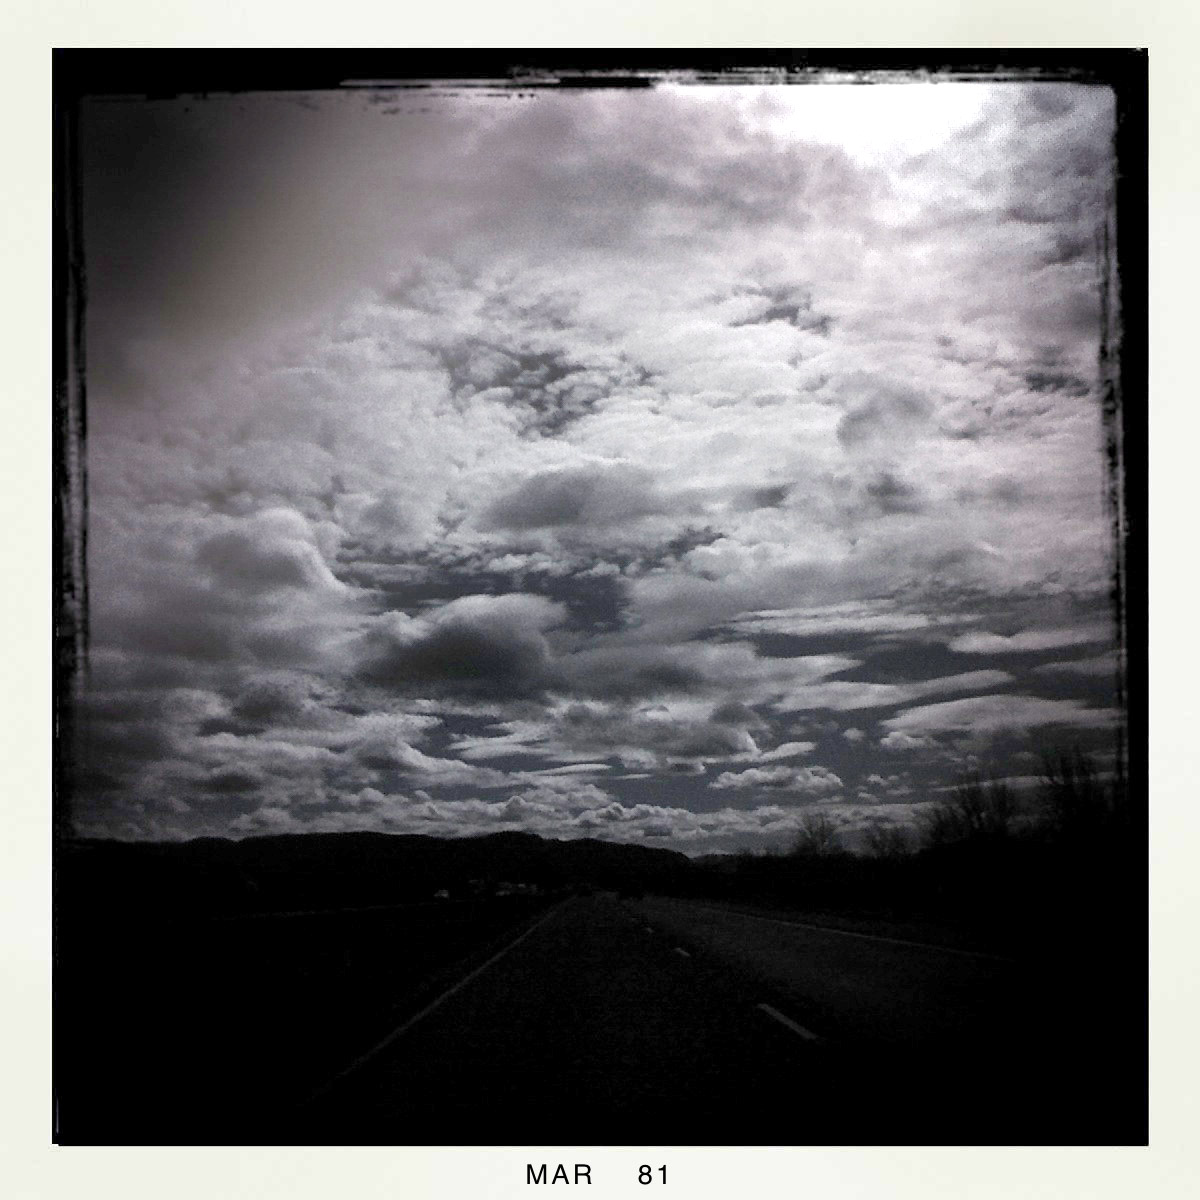 I5 south, Andrew D. Barron ©3/1/11